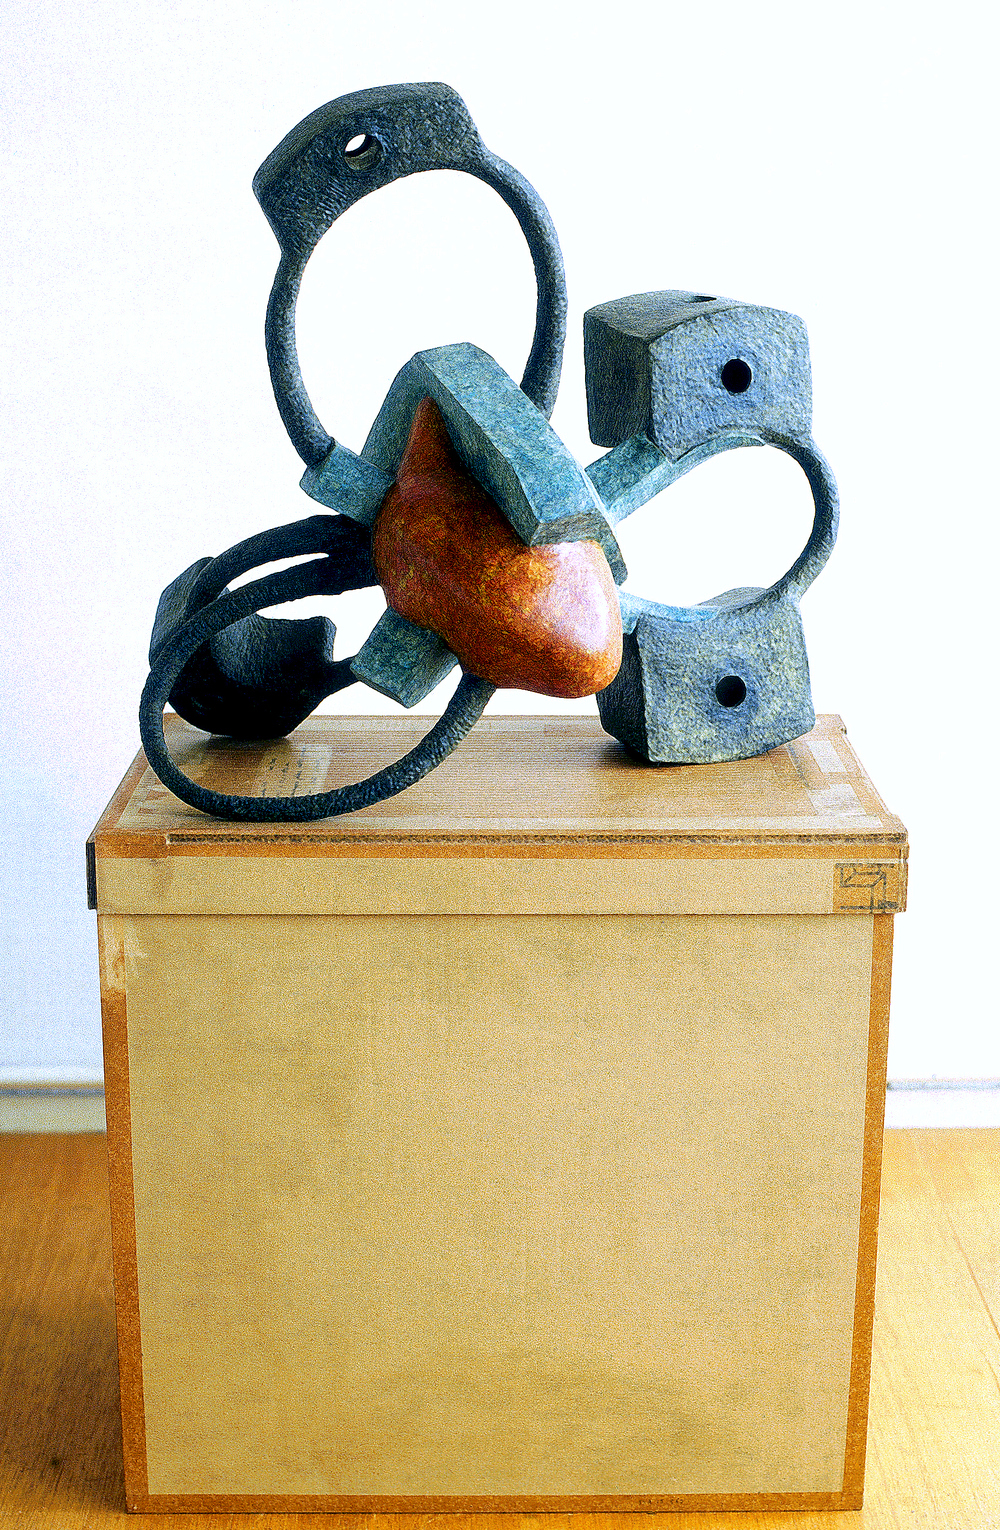 Untitled 2002 - 2003, Newspaper, leaflets, inorganic household waste, wax. 52 x 55 x 34 cm. (ex. box/pedestal). Private collection. Photo: W.Vermaase.